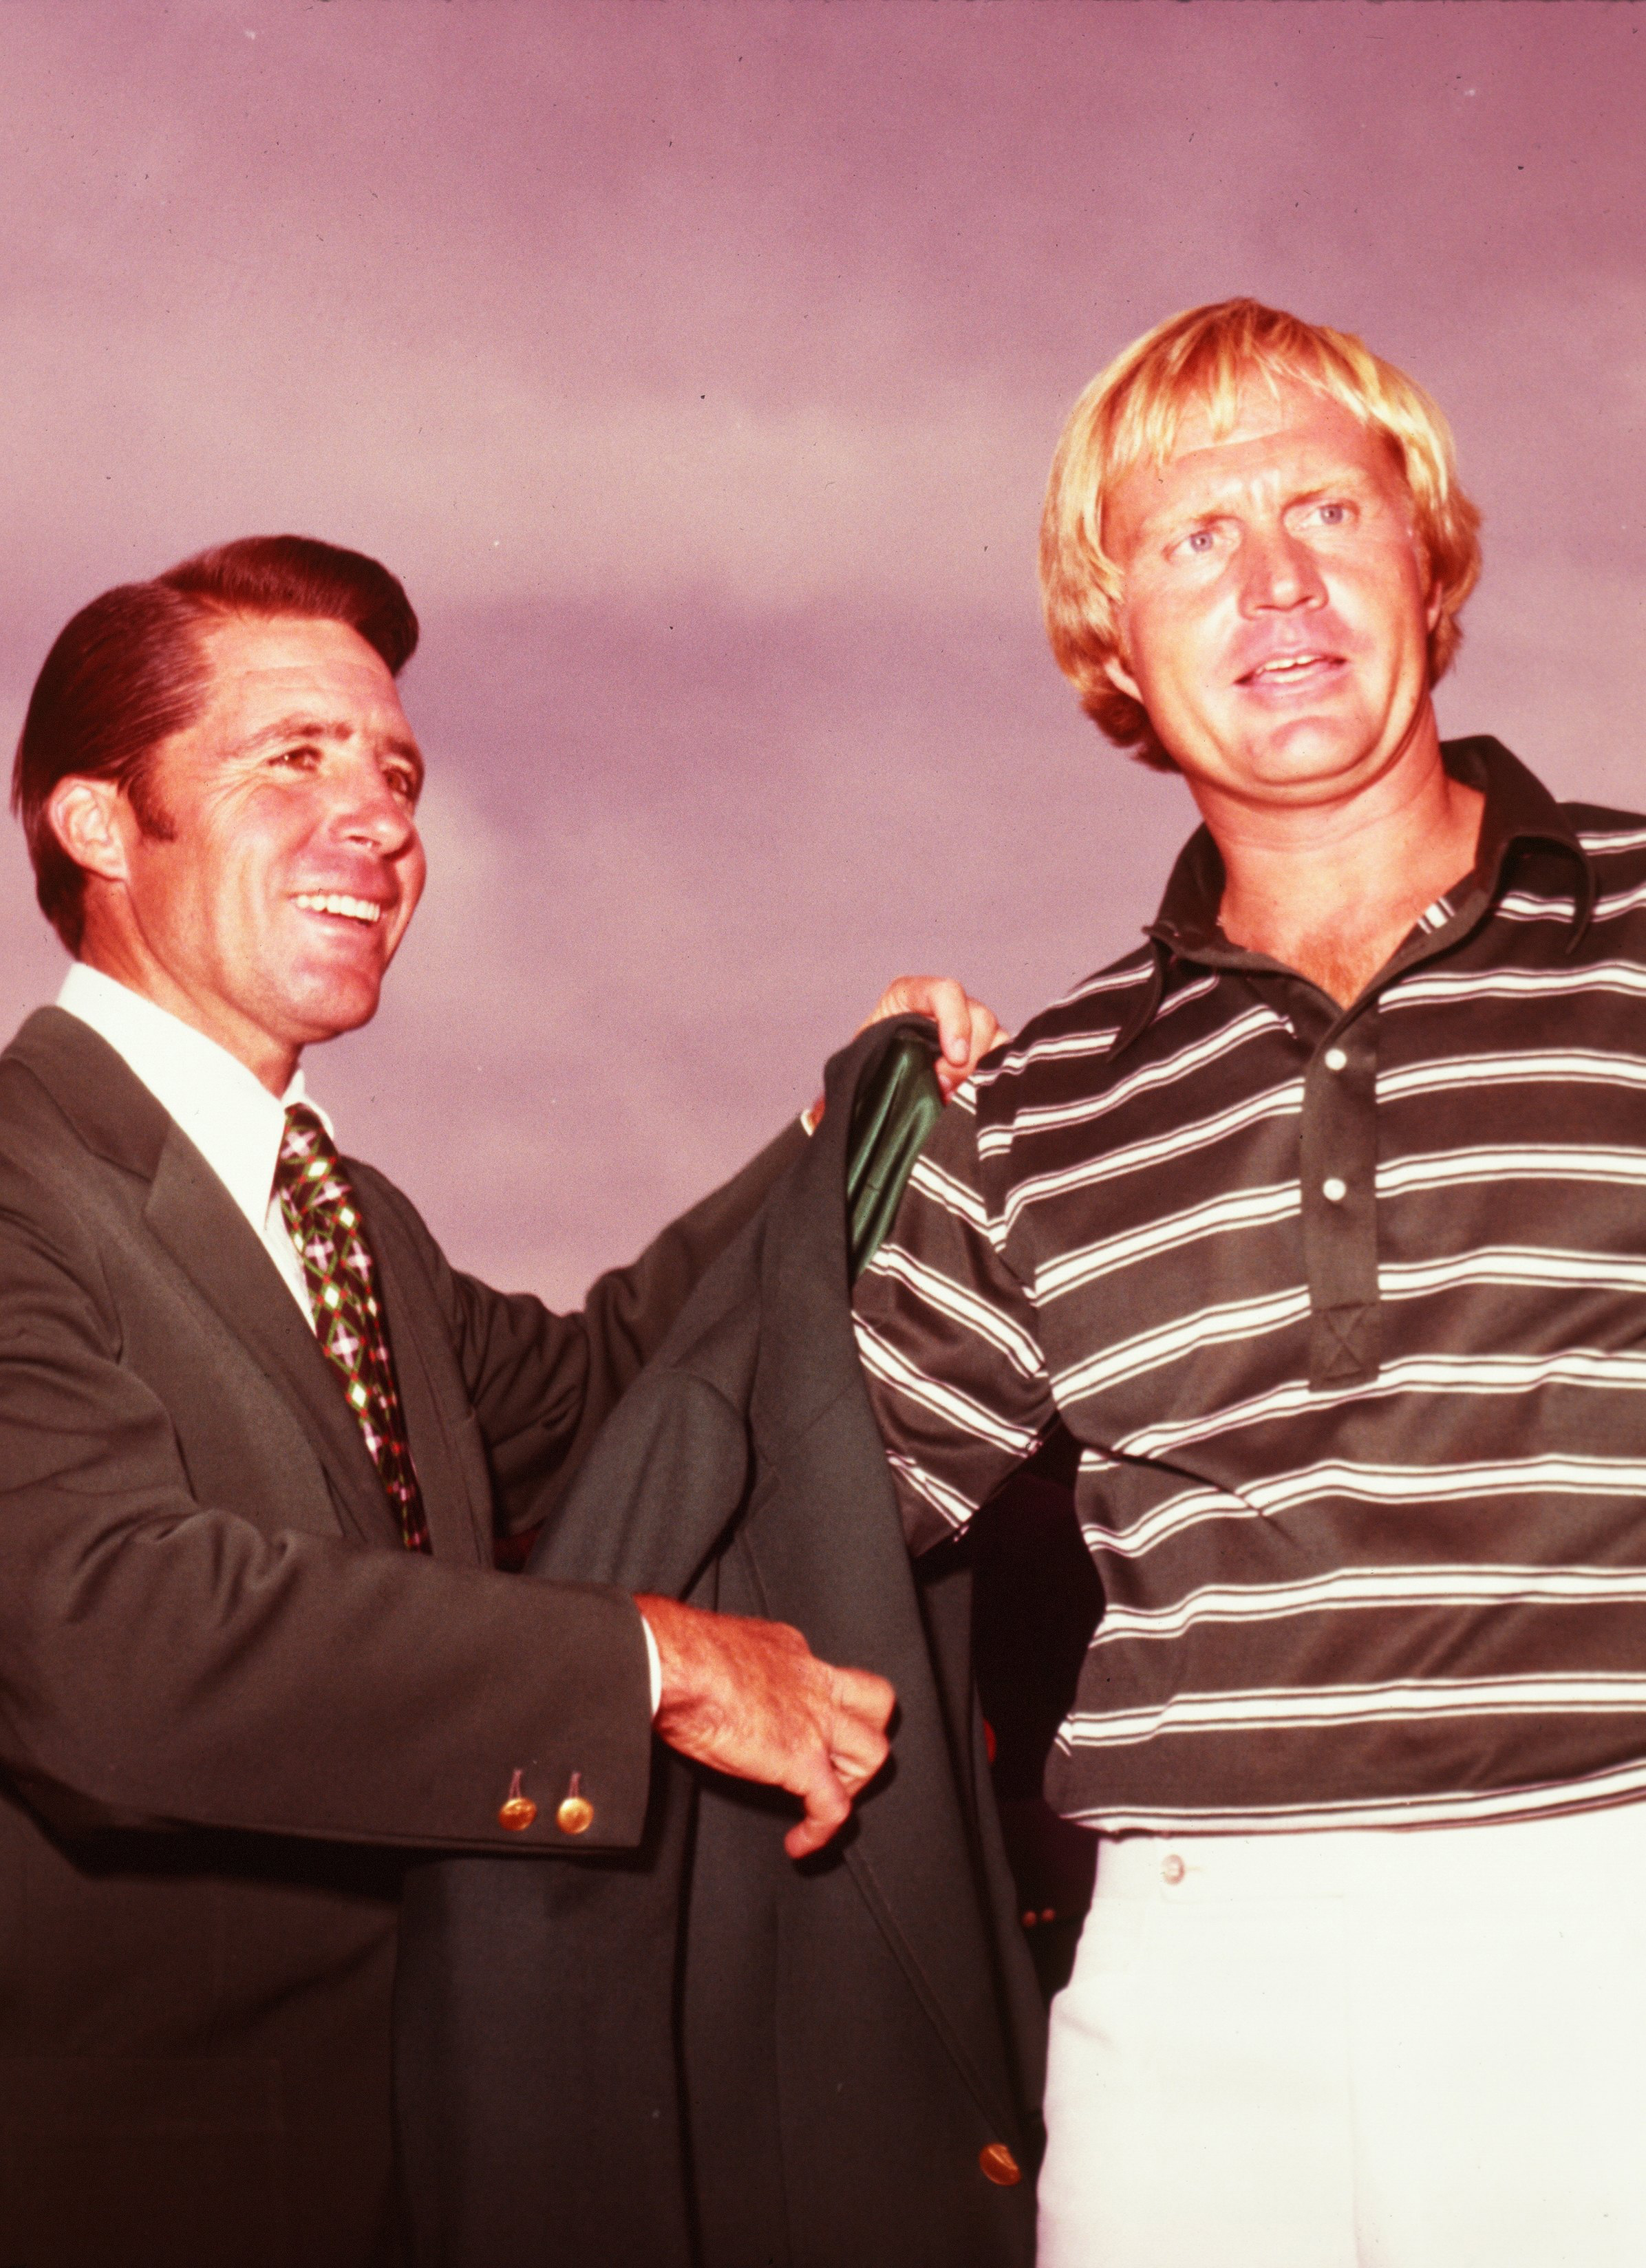 1974 Masters Champion Gary Player presents 1975 Masters Champion Jack Nicklaus with his green jacket.